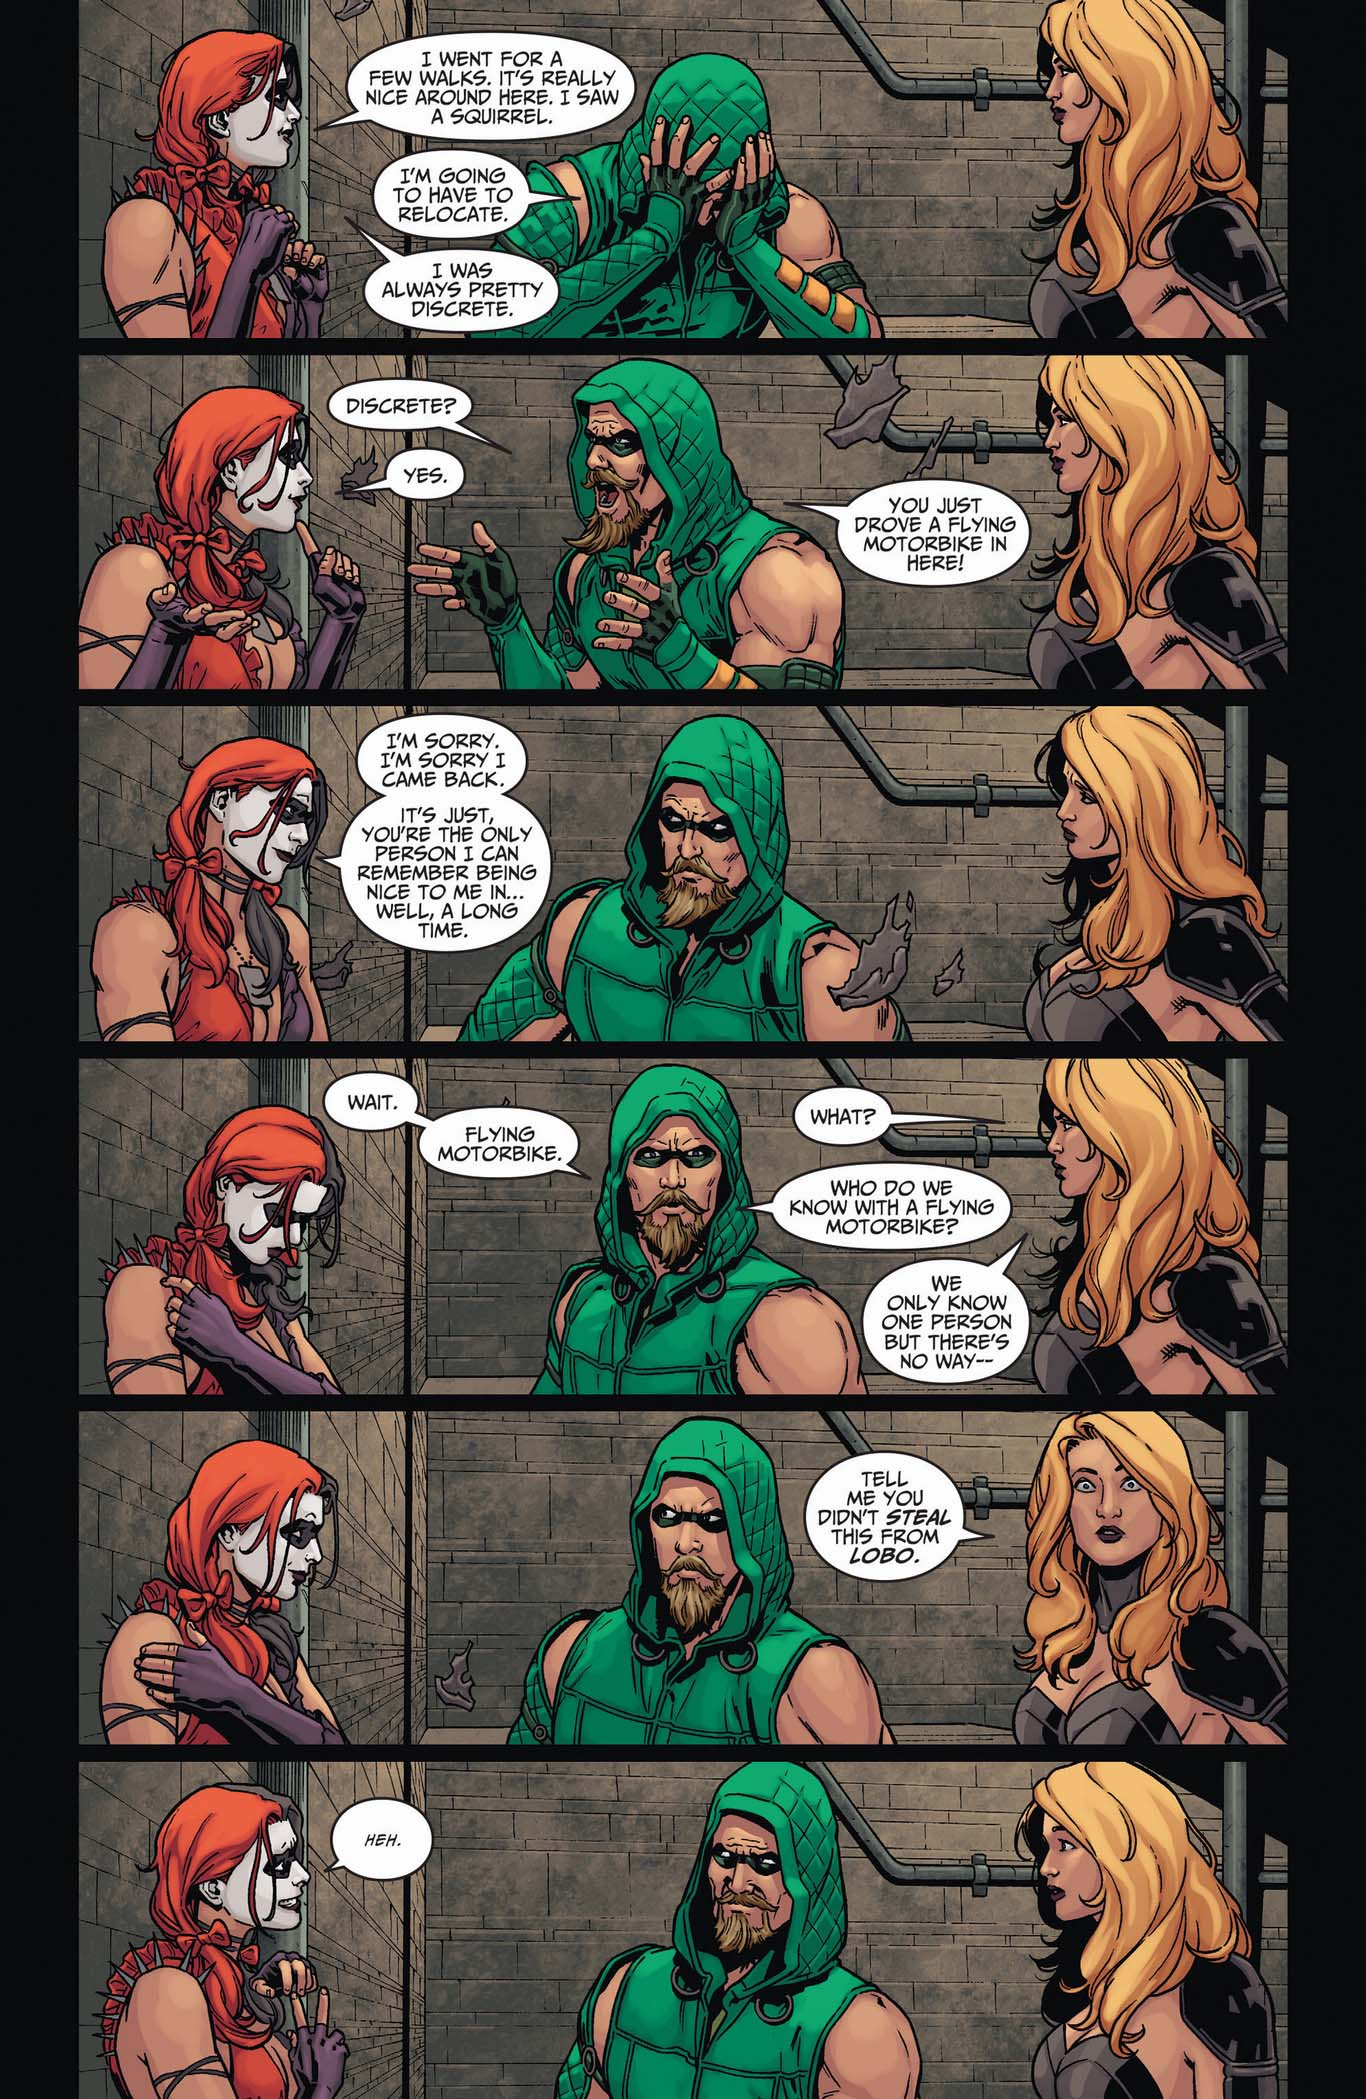 https://comicnewbies.files.wordpress.com/2014/03/harley-quinn-in-the-arrow-cave-2.jpg